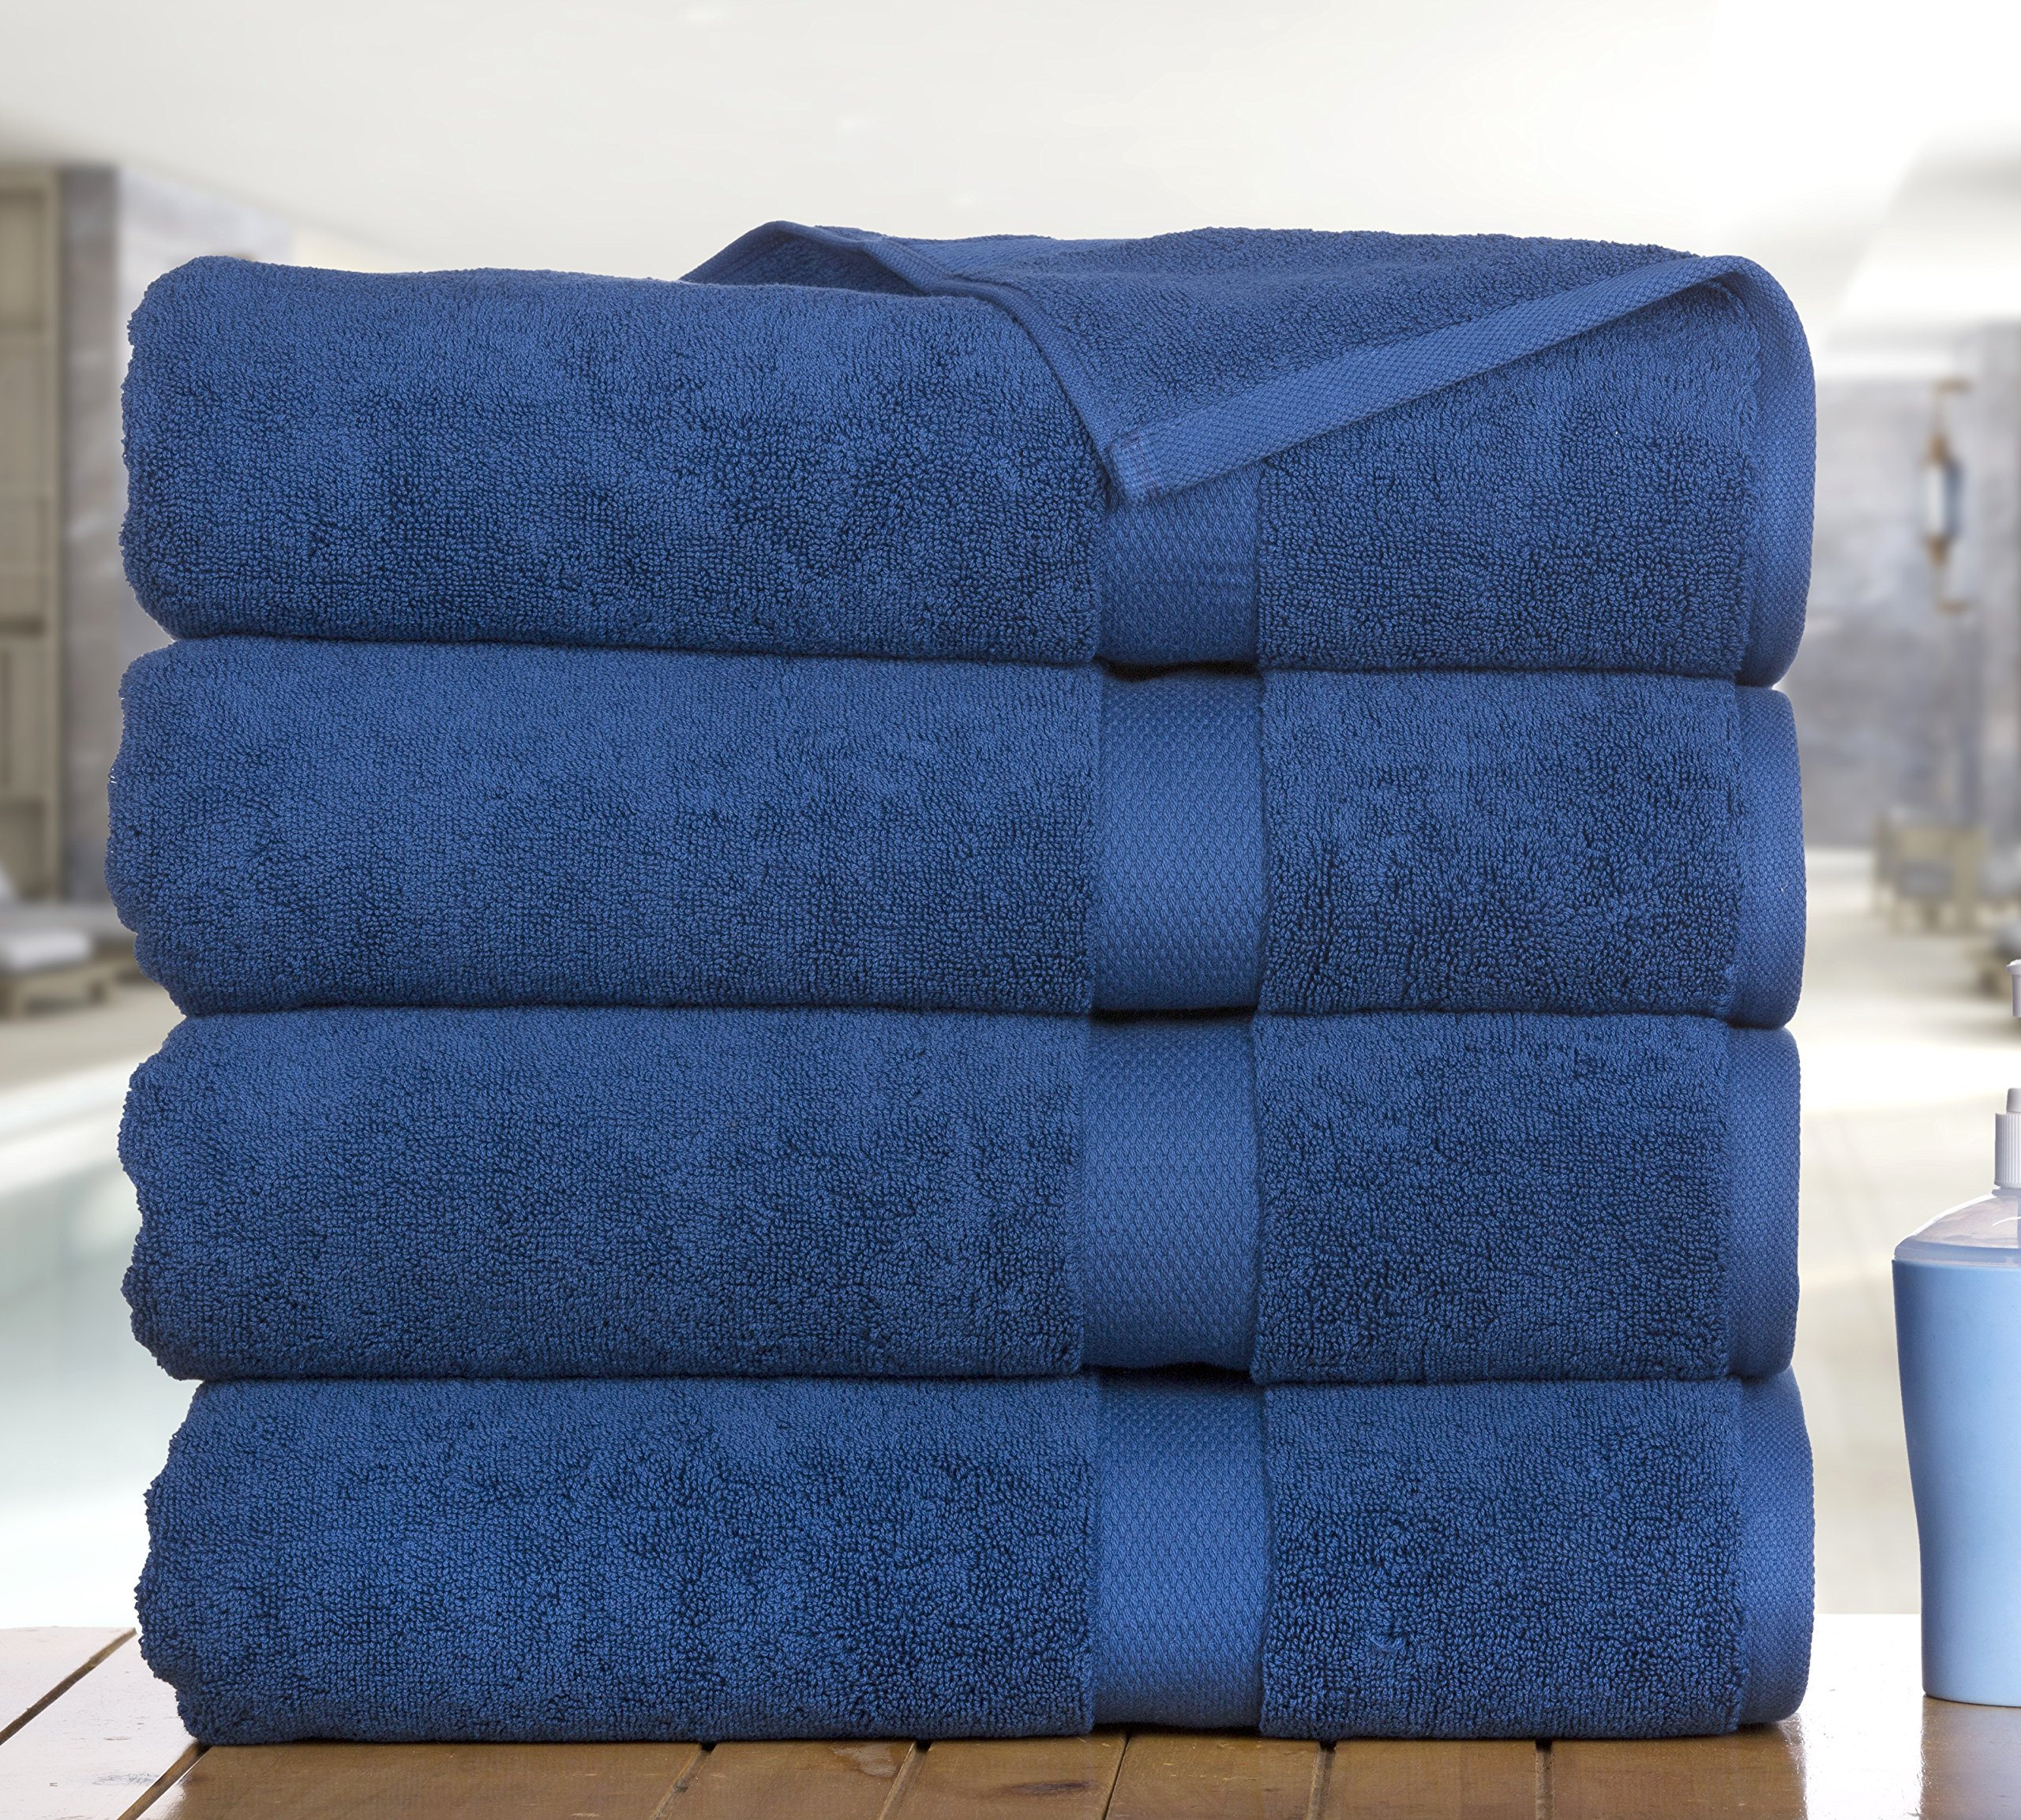 Madhvi Collection 800 GSM Premium Combed Cotton Extra Large 30 x 60 Inch Bath Towels 4 Pack, Oversized and Heavy Bath Towel Set, Hotel and Spa Towels Set With Maximum Softness, High Absorbency (Navy) by Casa Platino (Image #3)